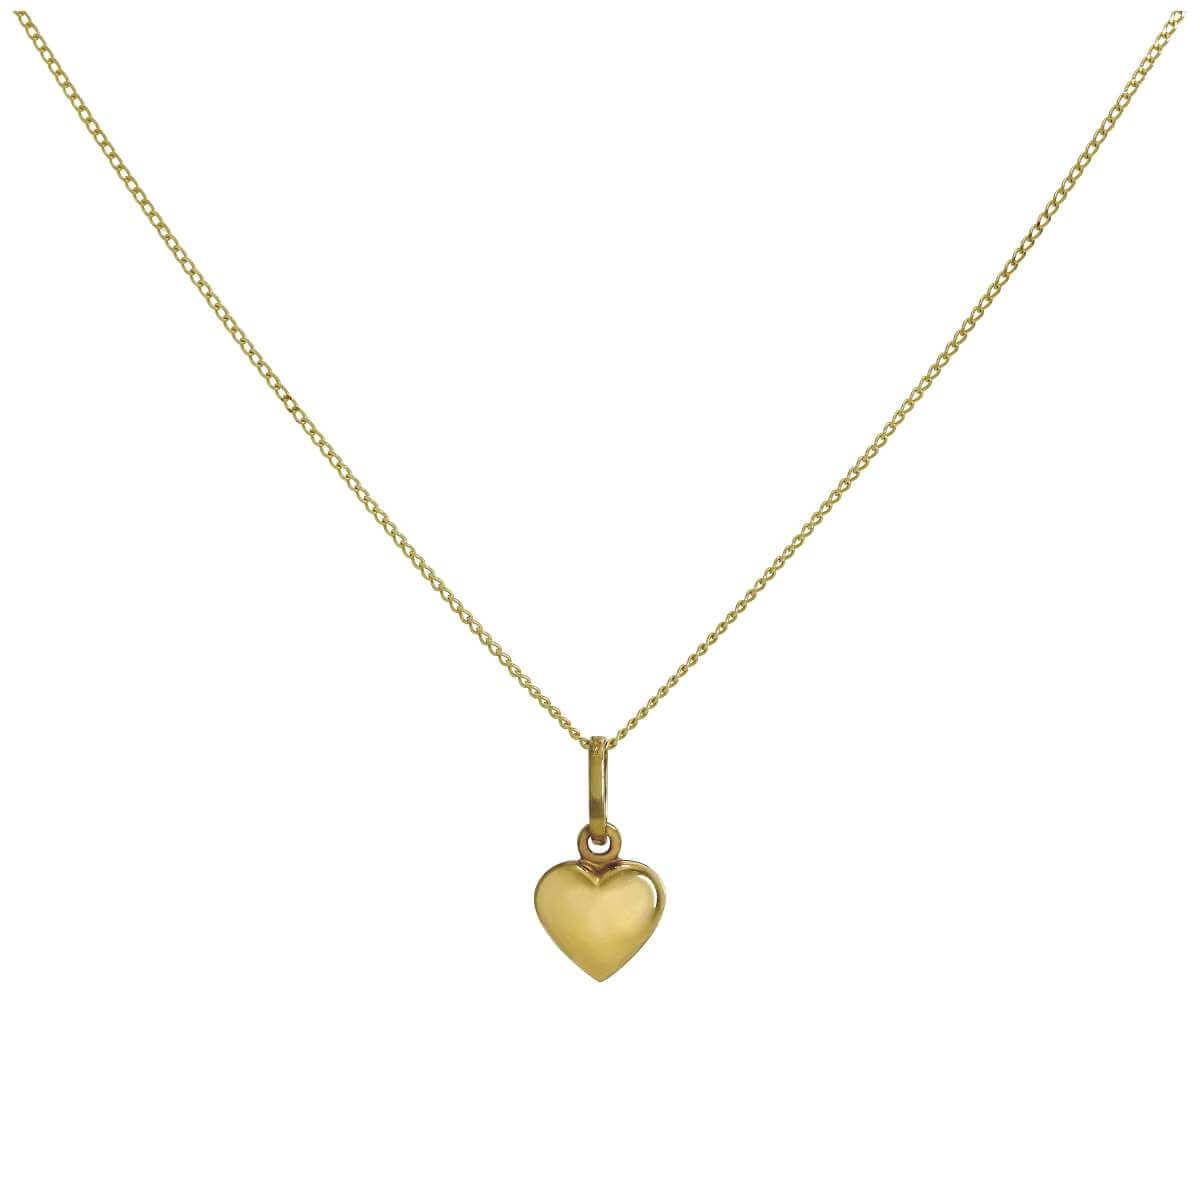 9ct Yellow Gold Hollow Tiny Puffed Heart Pendant Necklace 16 - 20 Inches